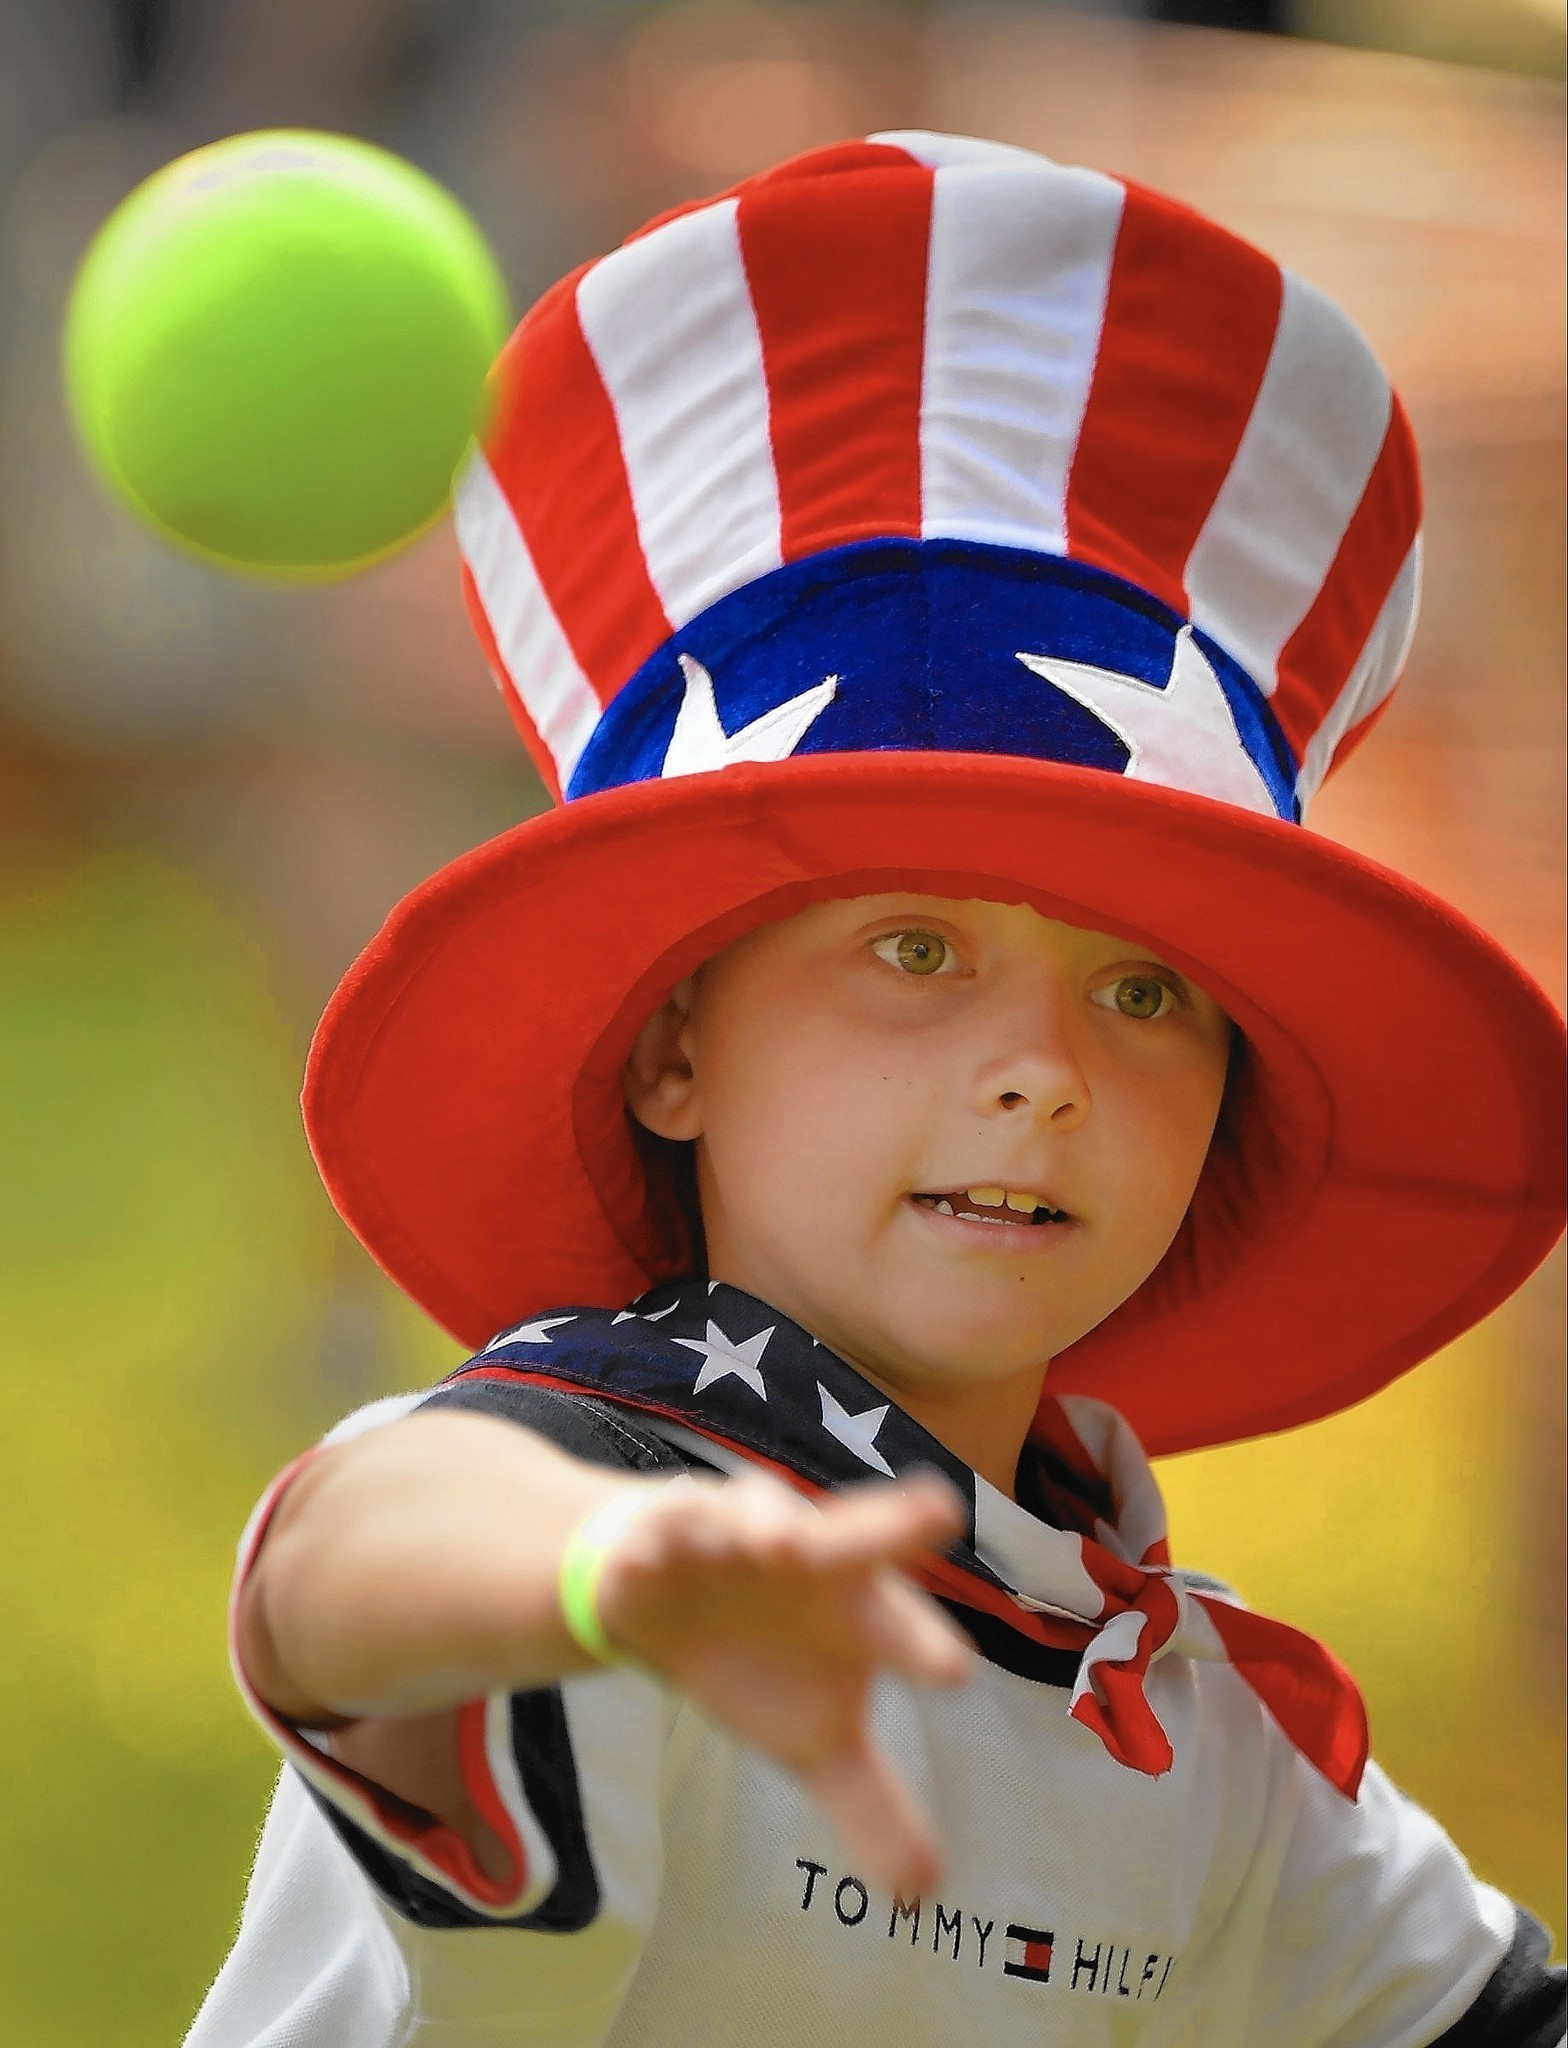 http://www.chicagotribune.com/suburbs/buffalo-grove/news/ct-bgc-independence-day-pre-tl-0630-20160627-story.html